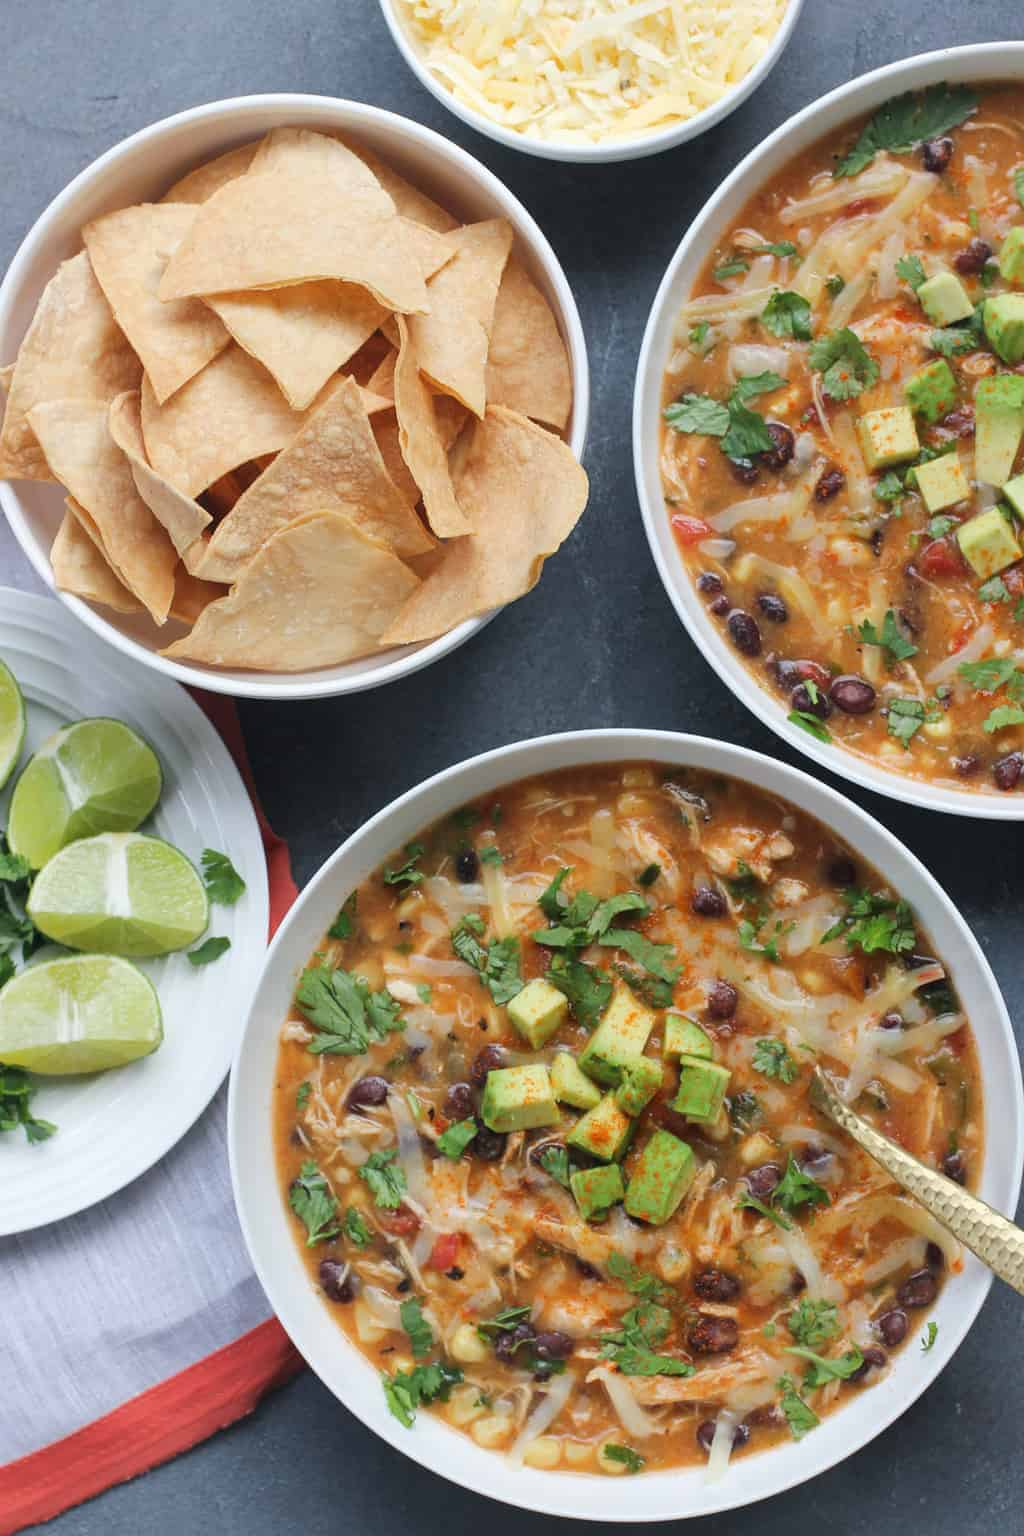 Chicken Tortilla Soup - Aspicy and comforting Mexican soup that is loaded with tender cooked chicken, beans, fire-roasted tomatoes, corn and smokey peppers.Dress it up with your favorite toppings and serve with crunchy tortilla chips for a meal that the whole family can enjoy.